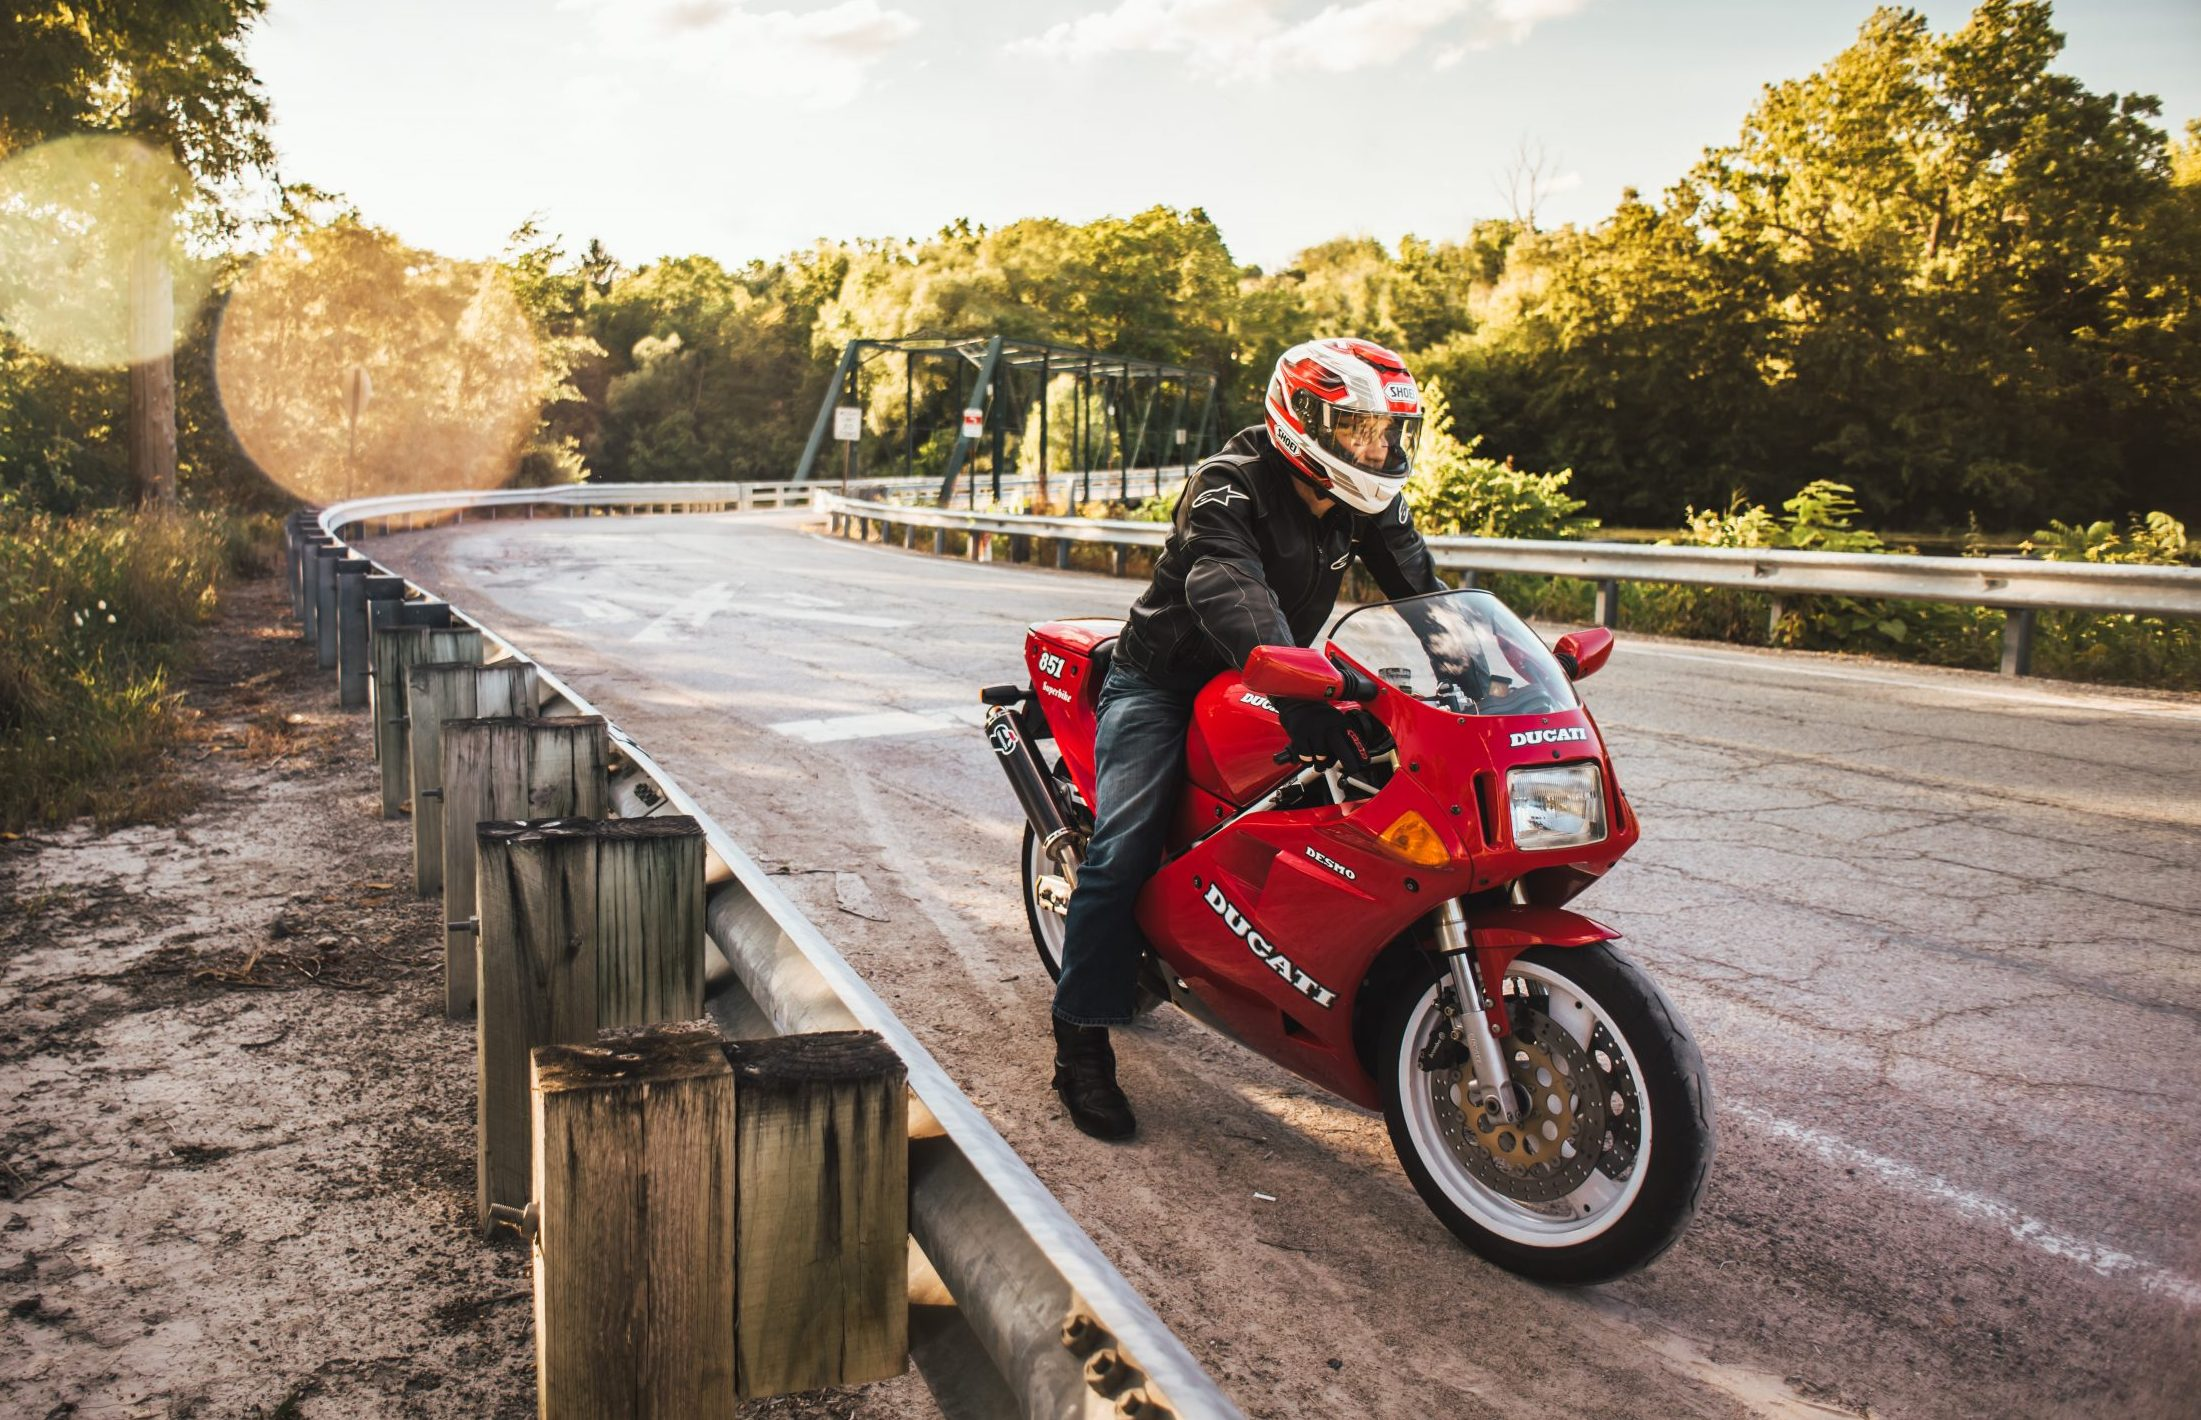 The 80s and 90s race-replica bikes going full-throttle